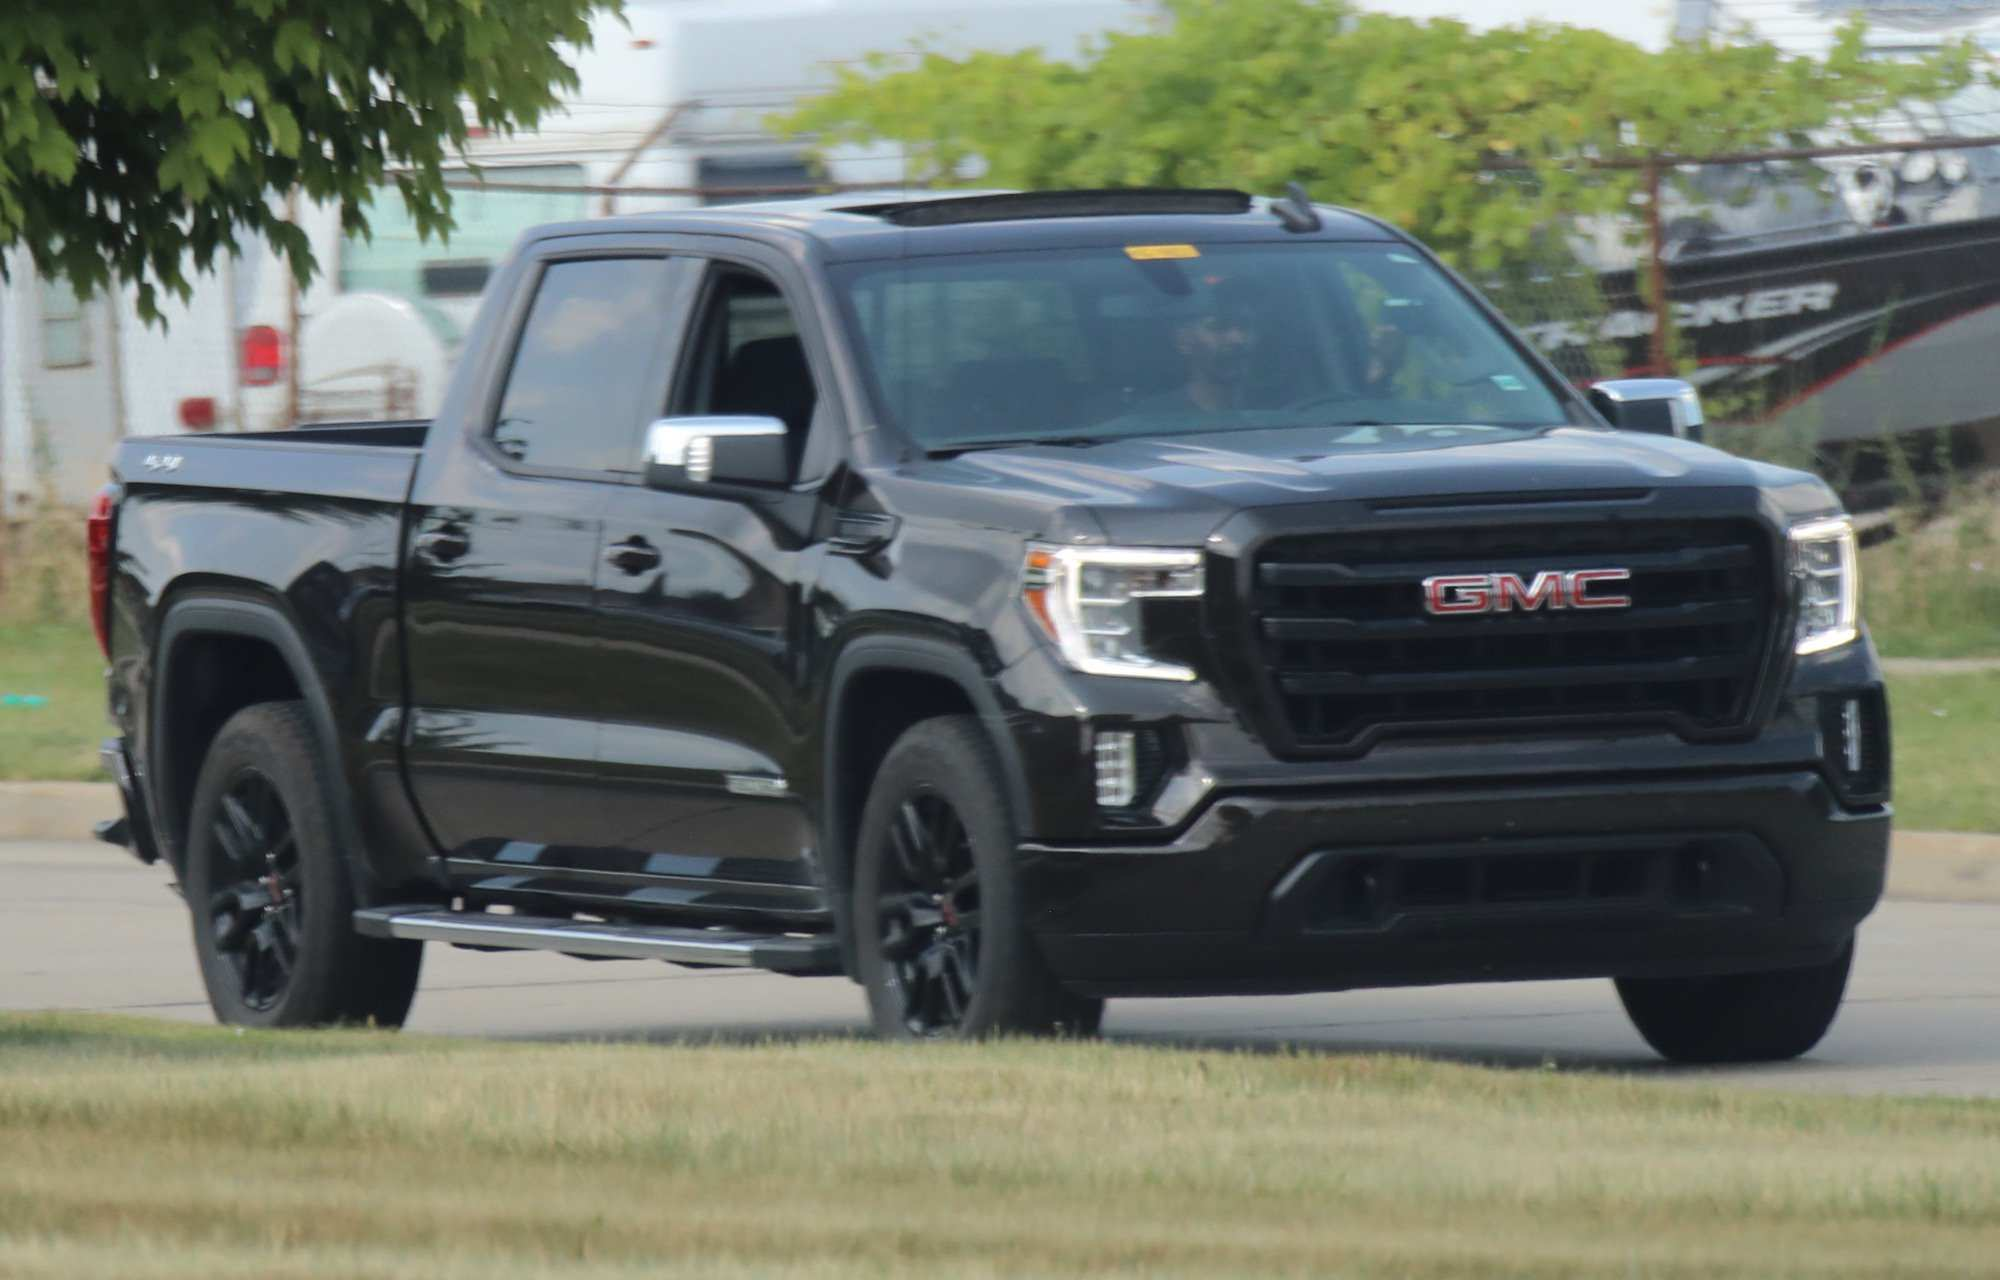 89 Gallery of 2019 Gmc Sierra Rendering Exterior for 2019 Gmc Sierra Rendering